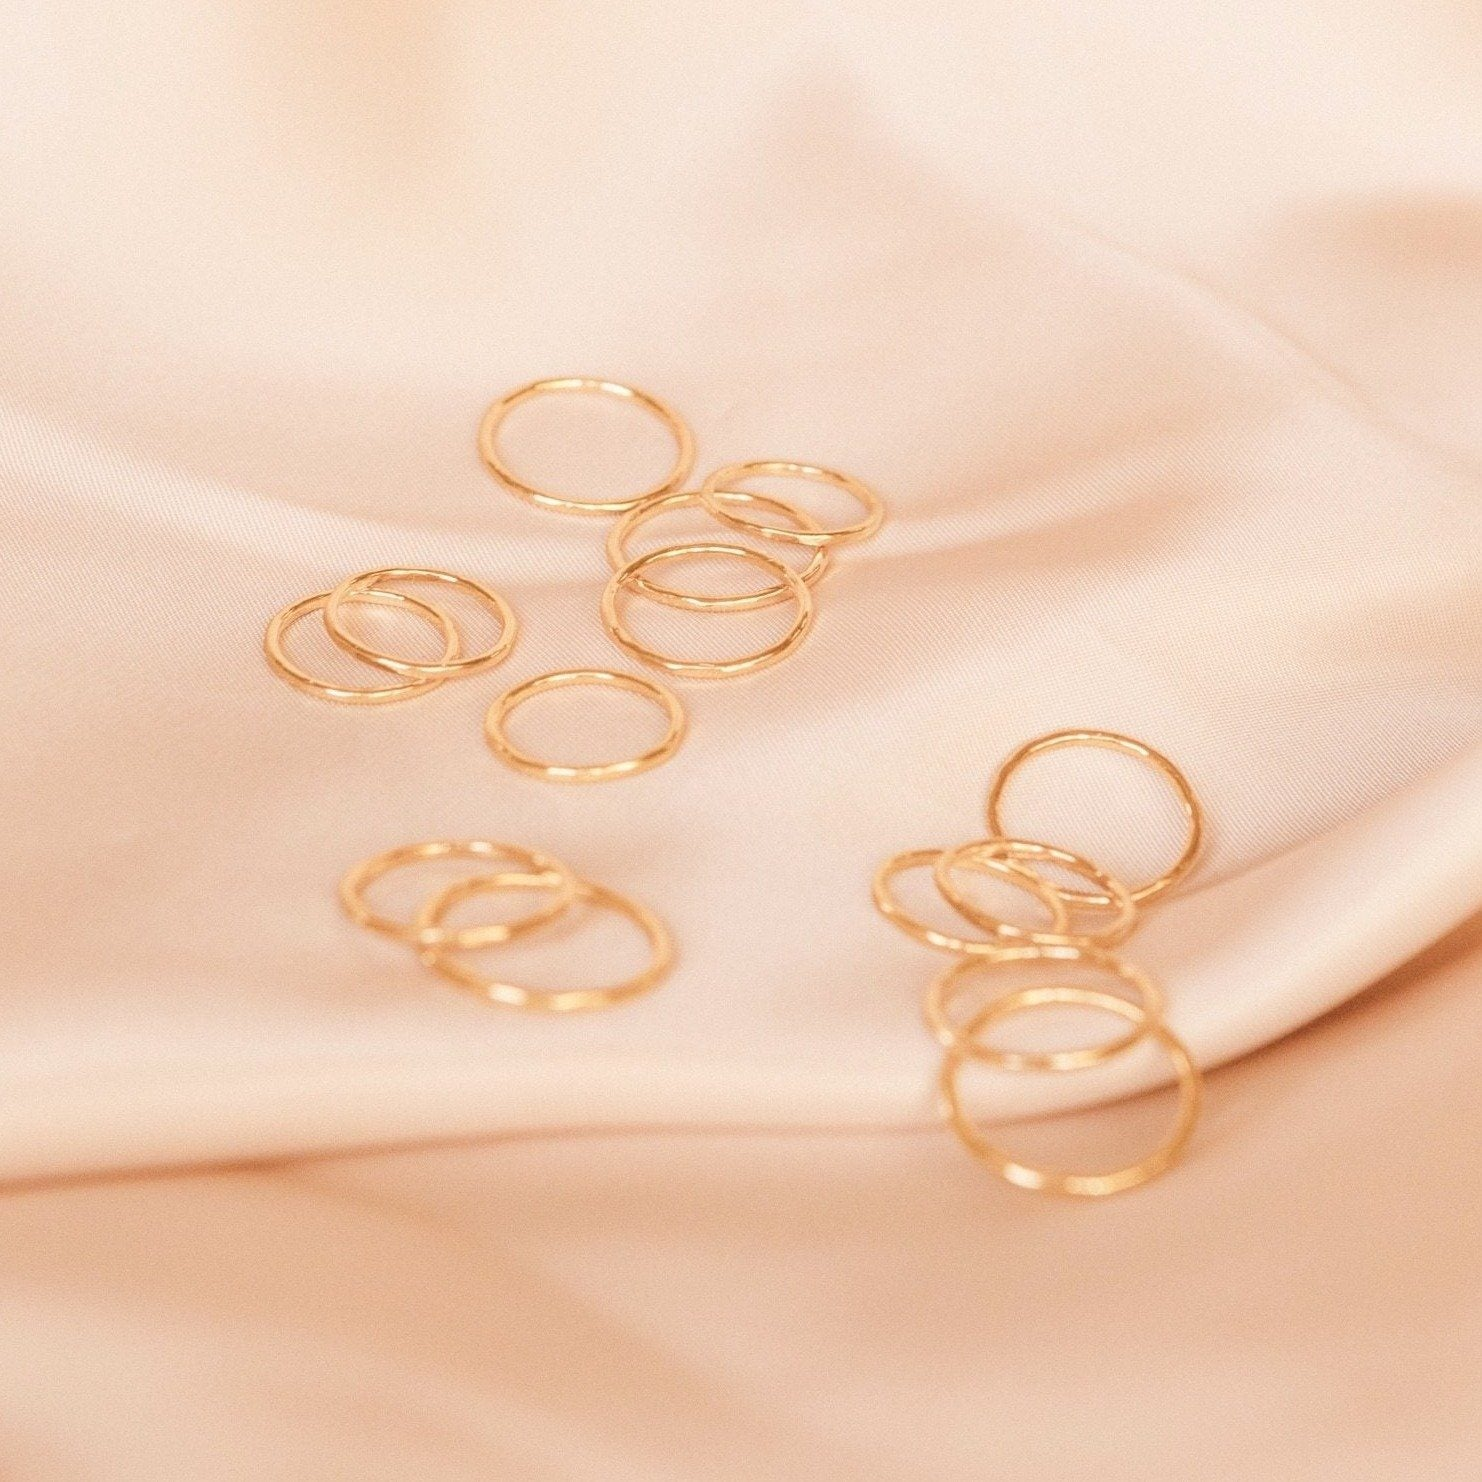 Dainty gold hammered band rings laid out on a piece of pink satin. Handmade by Katie Dean Jewelry in California.